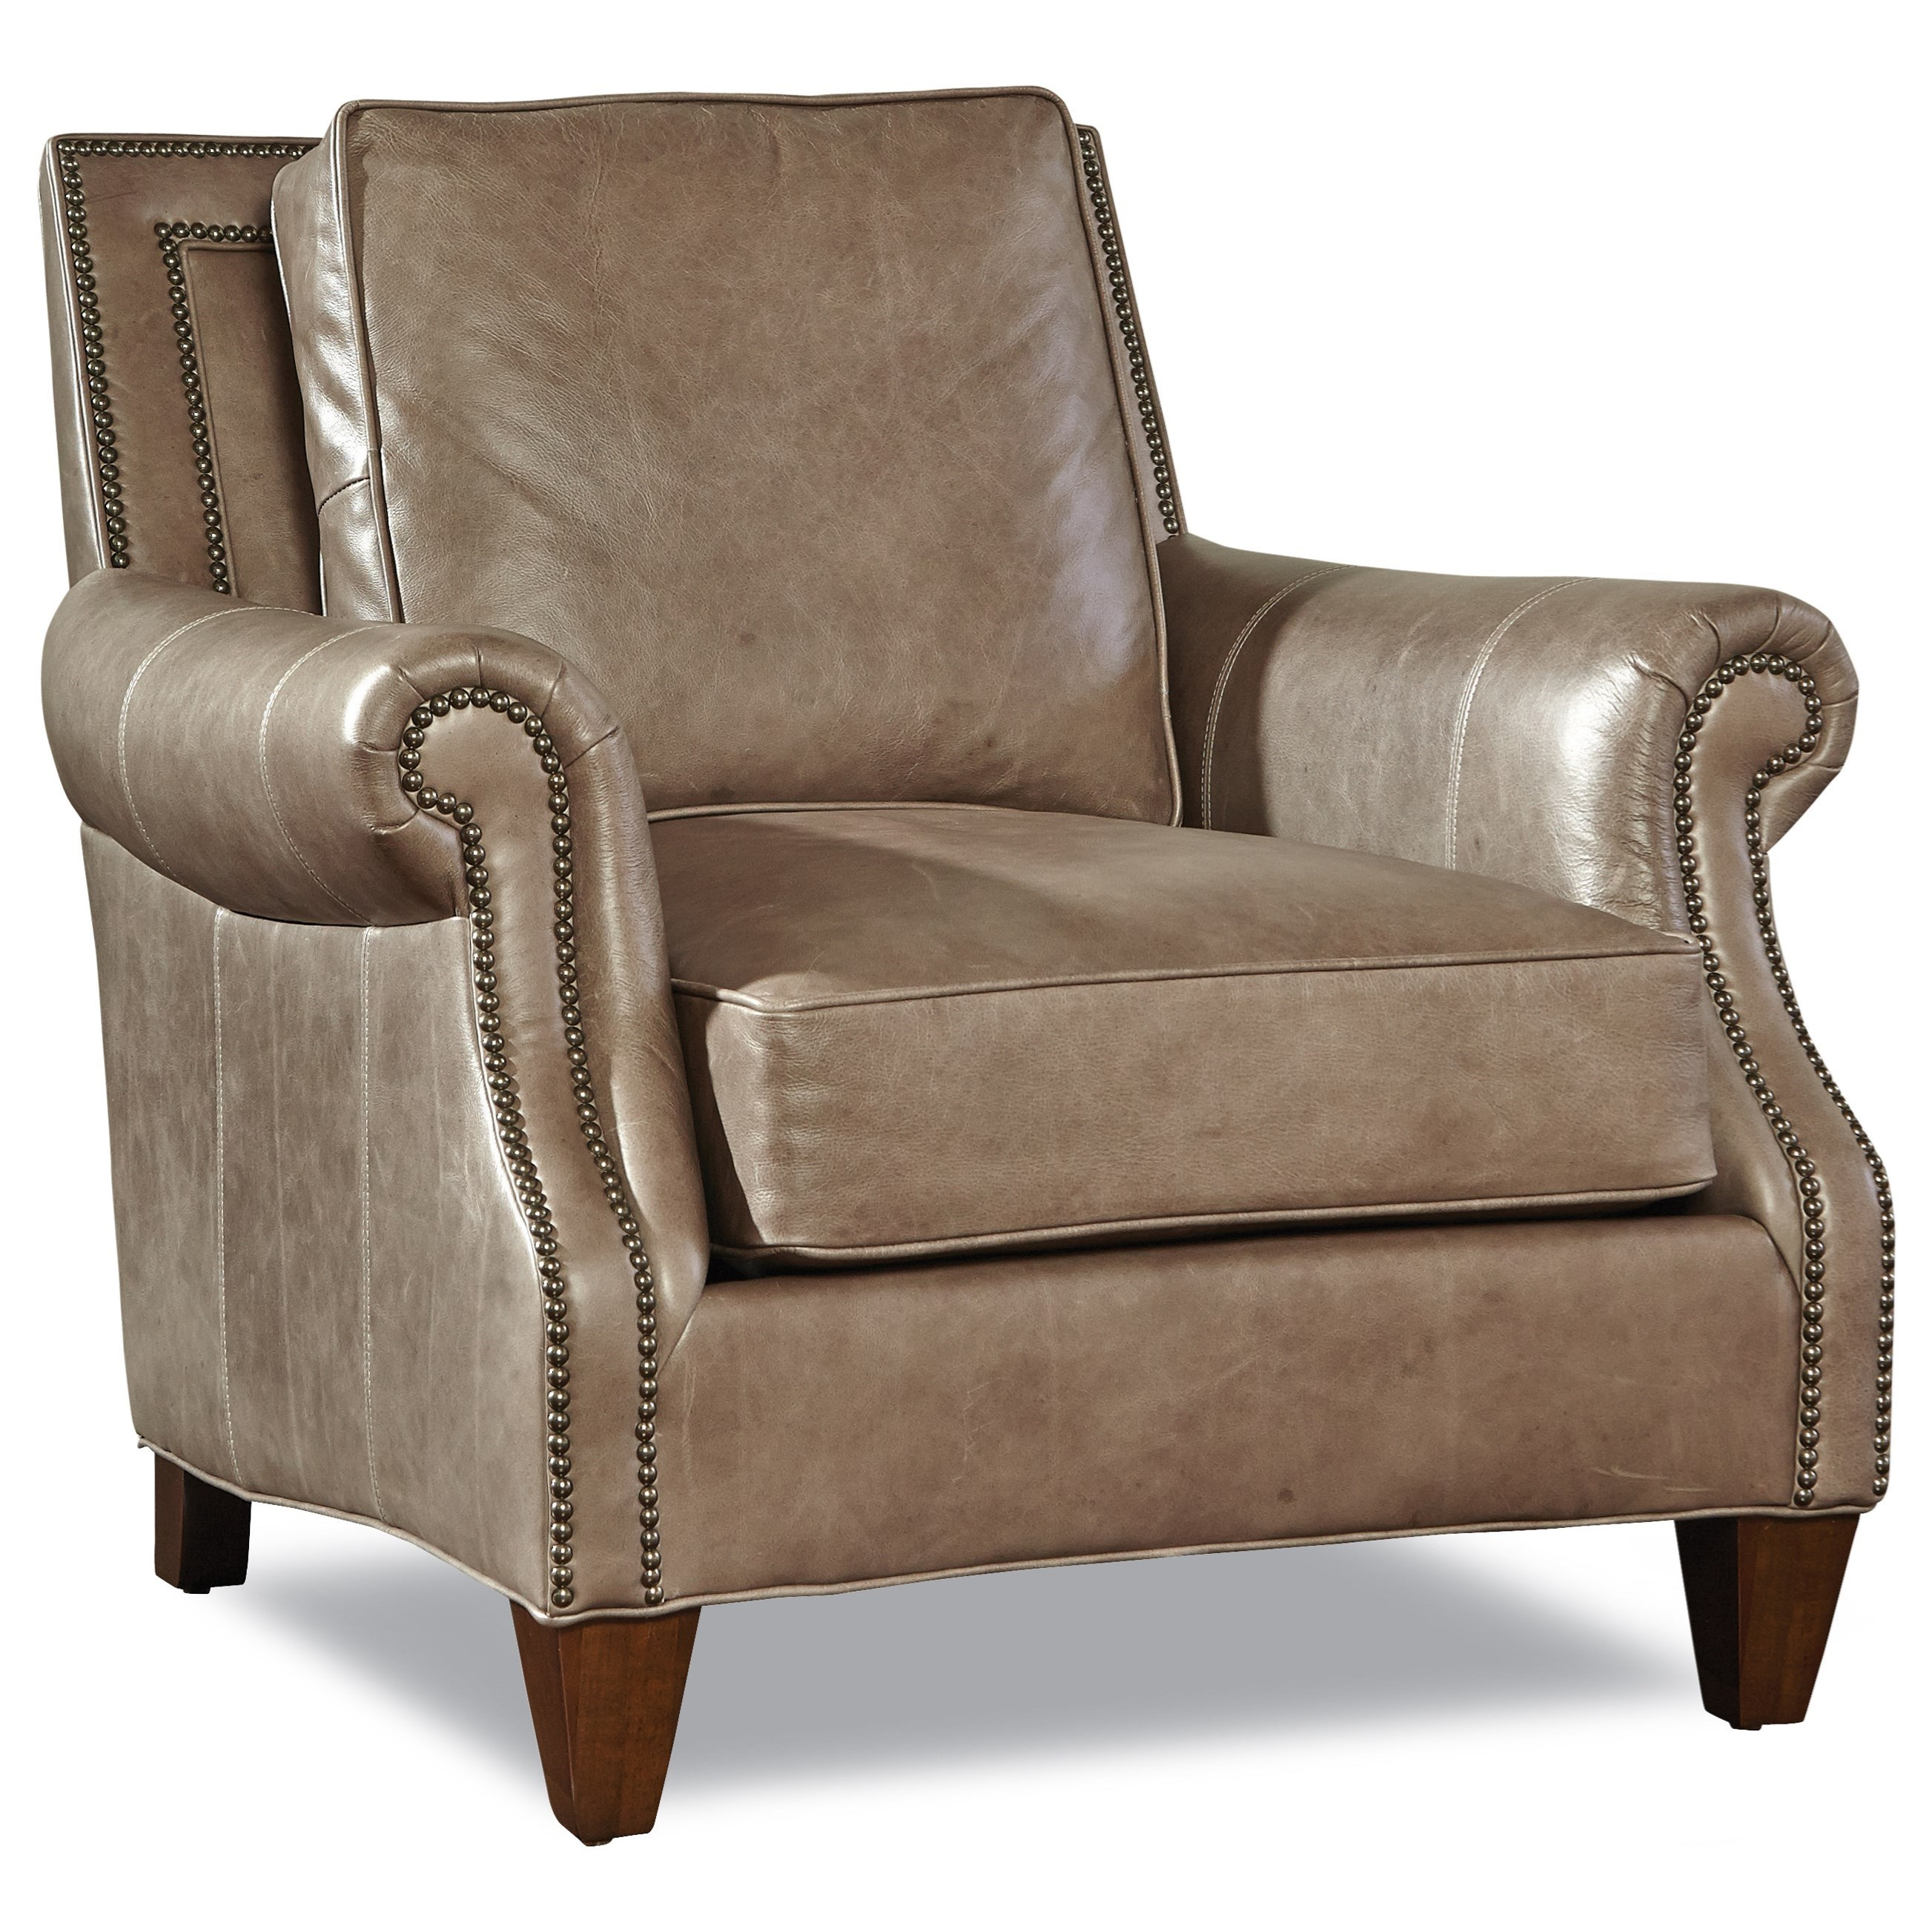 Johnson Chair by Huntington House at Belfort Furniture